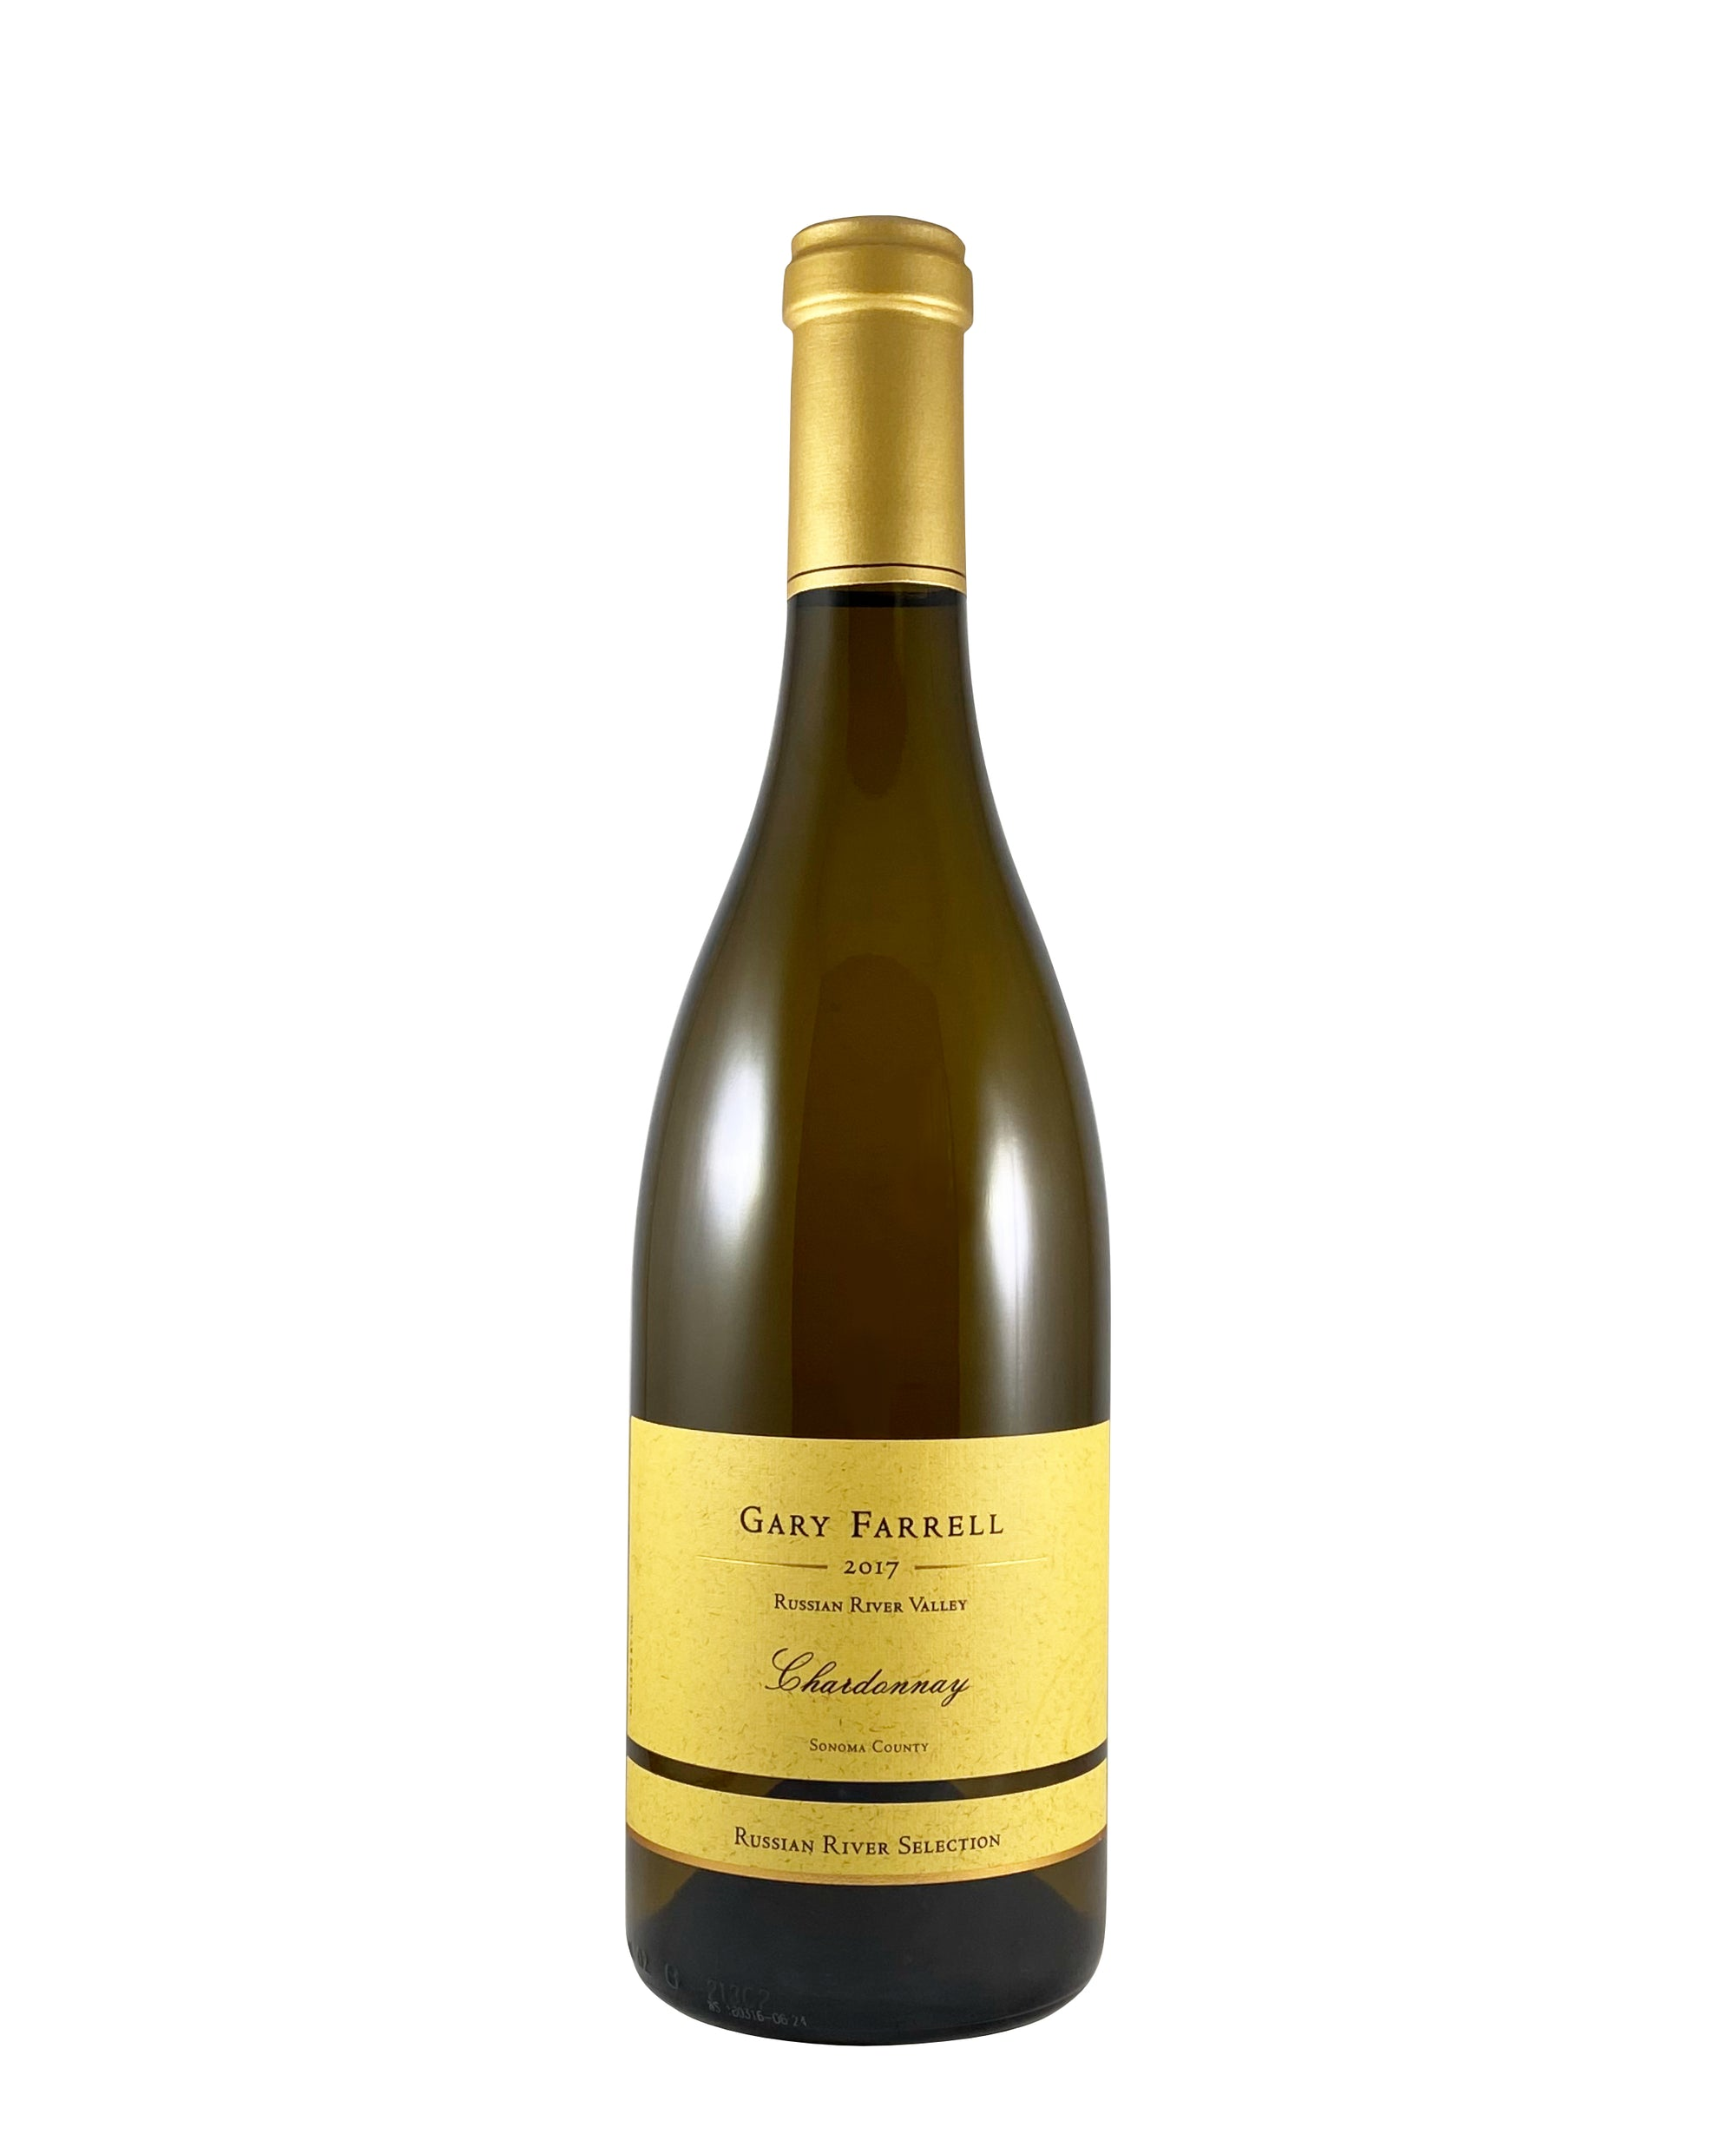 "*9W* 2017 Gary Farrell ""Russian River Selection"" Chardonnay Russian River Valley (Sonoma County, CA)"